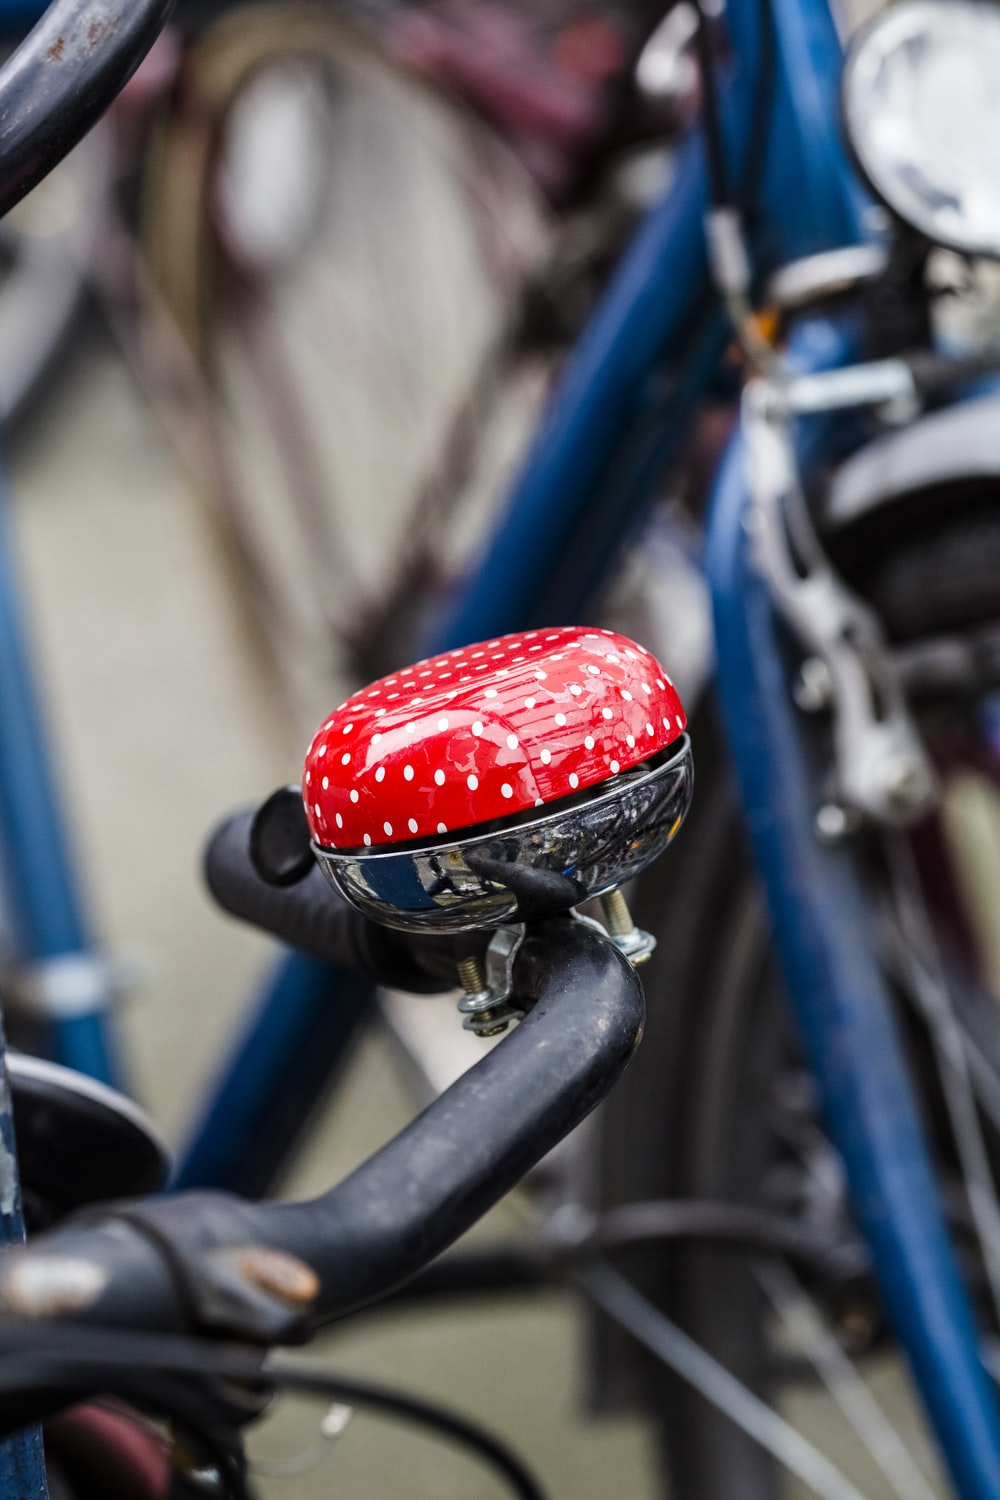 red and blue bicycle bell on black bicycle